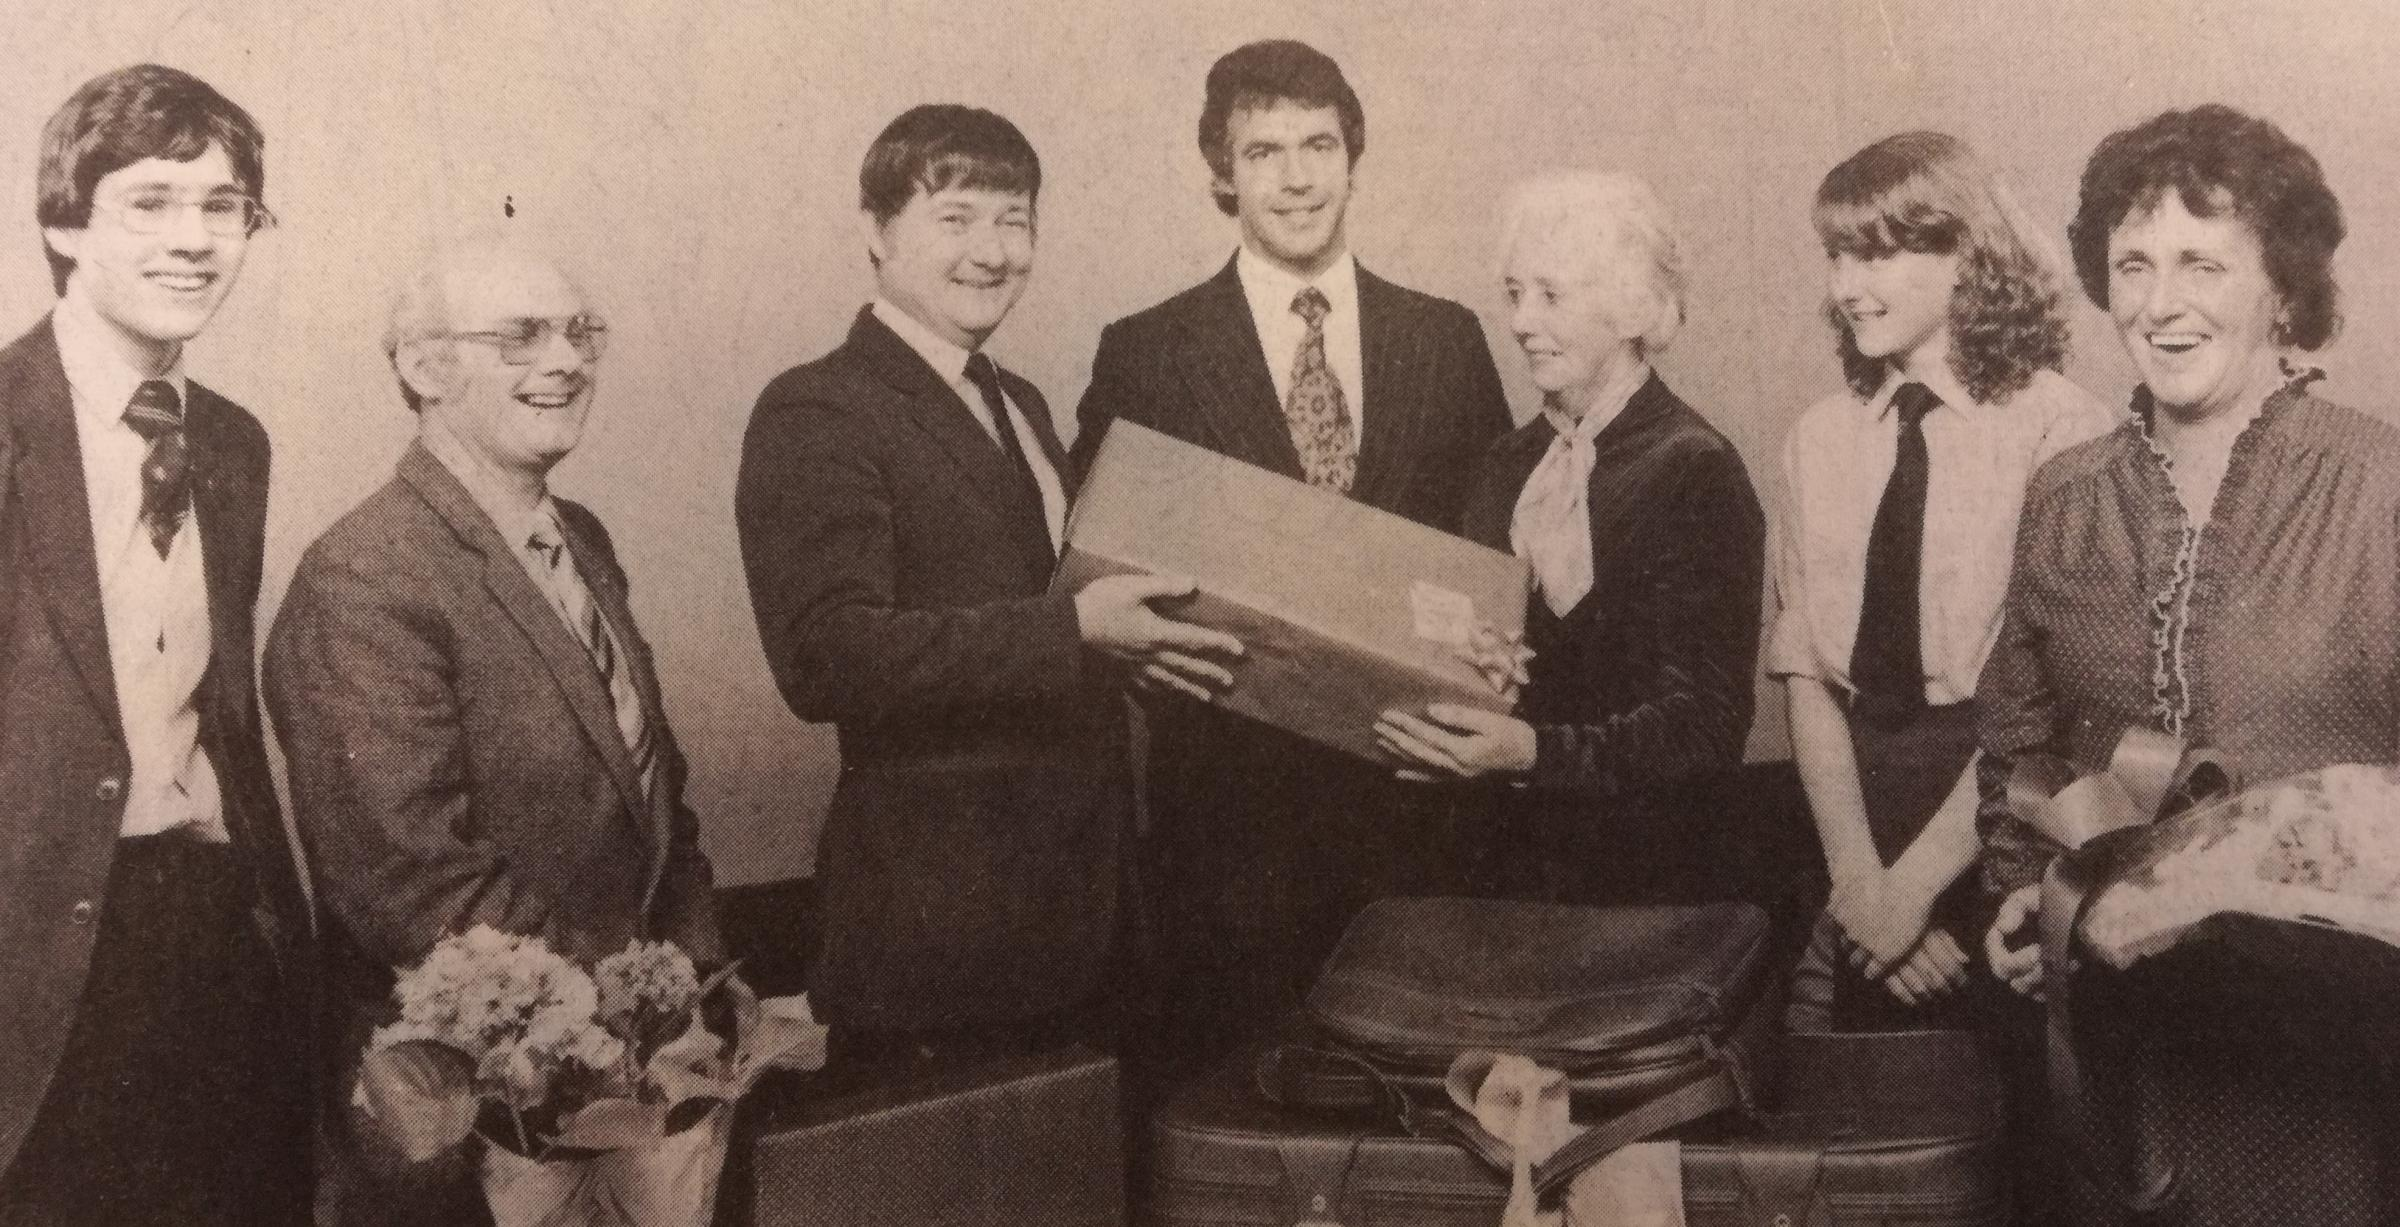 IN April 1983, Ludlow School secretary Brenda Hughes stepped down after 19 years in the post. School pupils go together to buy a set of matching cases and a plant to mark her farewell and these were presented by head boy and girl Christopher Cant and Wend